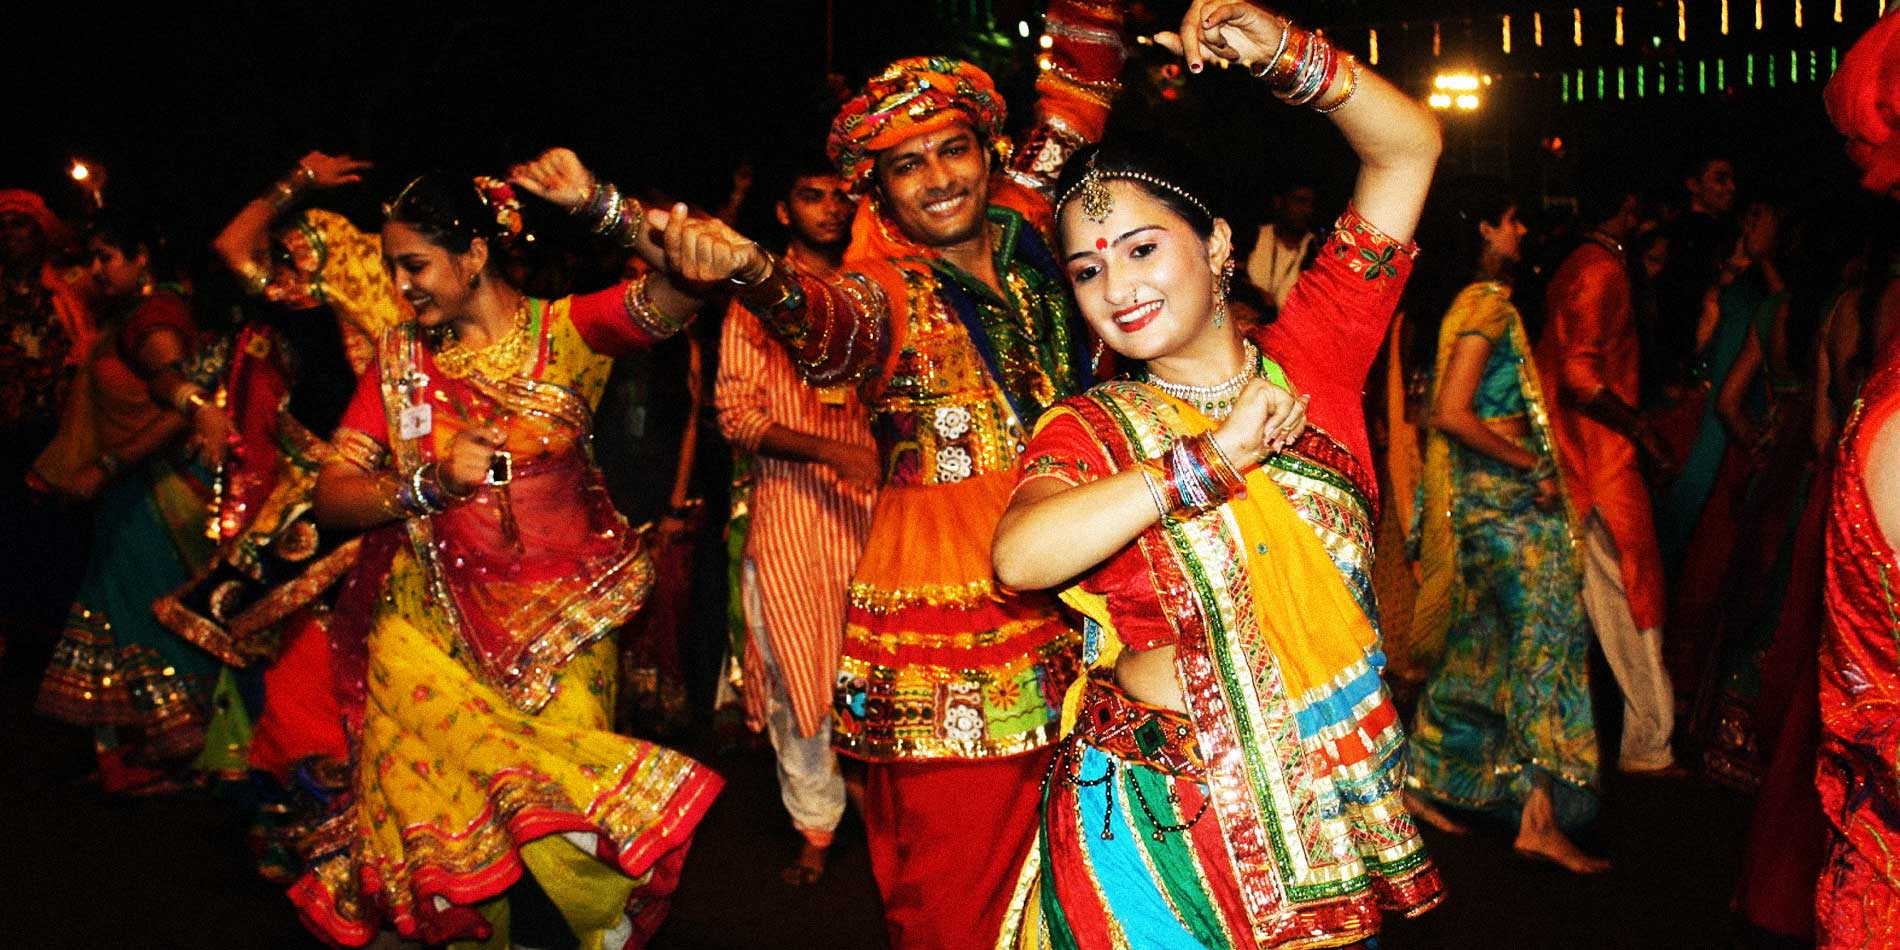 people look beautiful in chaniya choli and kurta in navratri